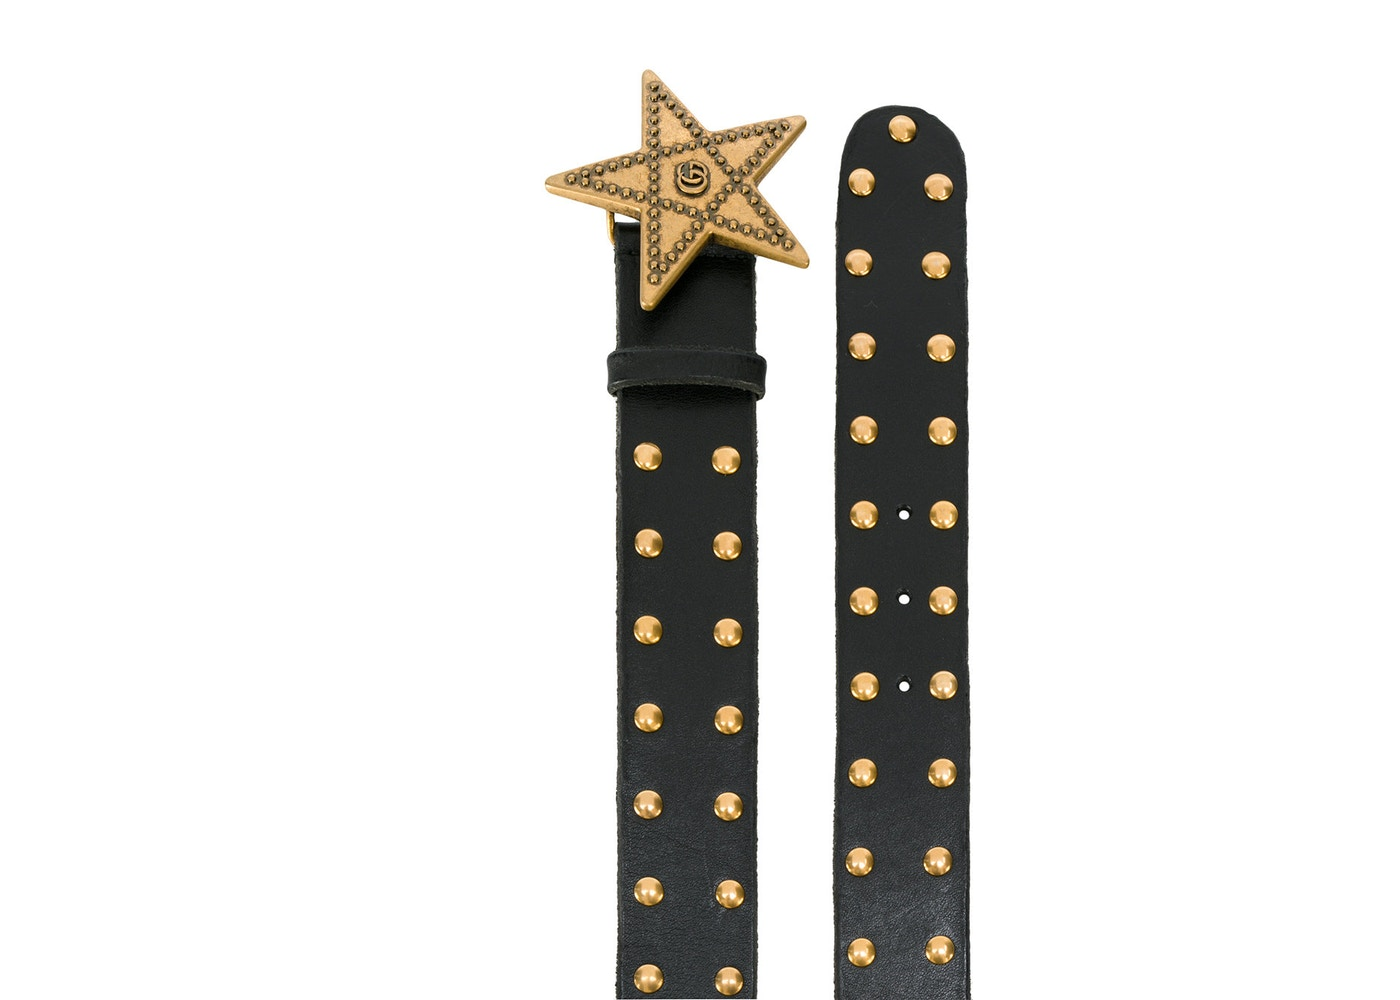 569c73c82f2 Gucci Star Studded Belt 65-20 Black